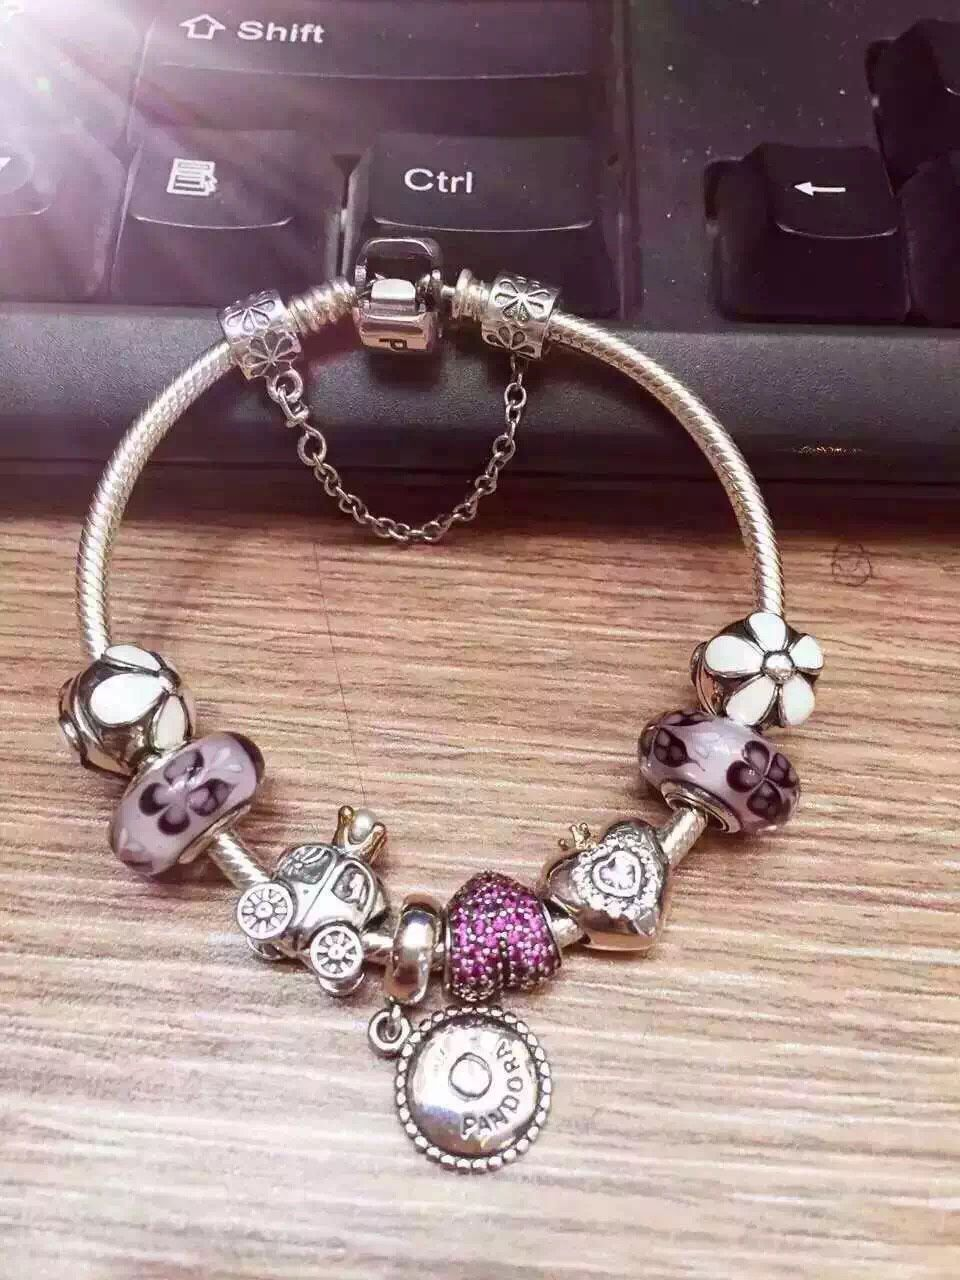 50 off 239 pandora charm bracelet hot sale sku